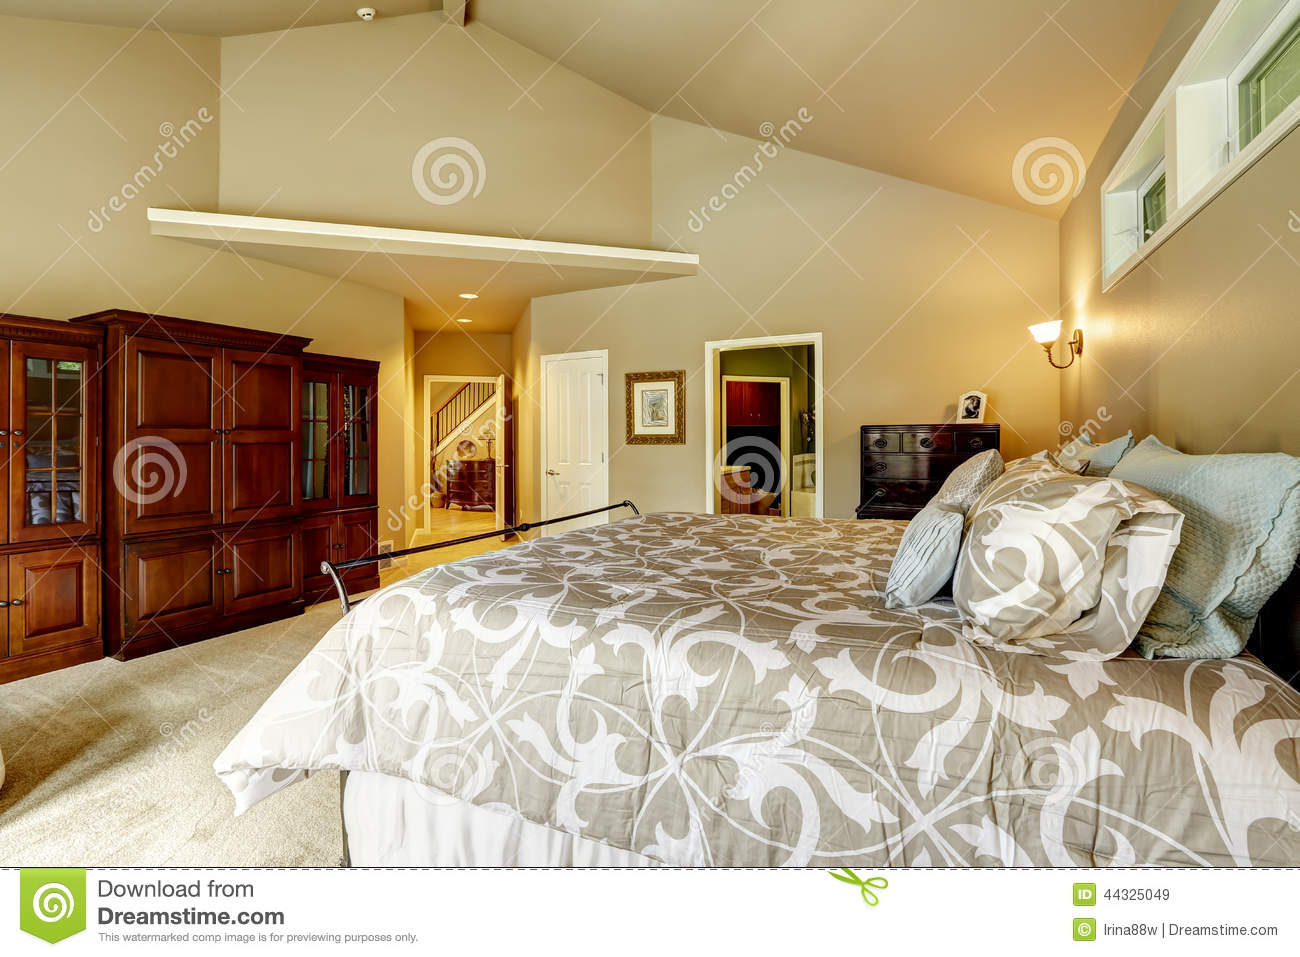 Luxury House Interior Bedroom With High Vaulted Ceiling A Stock Image Image 44325049